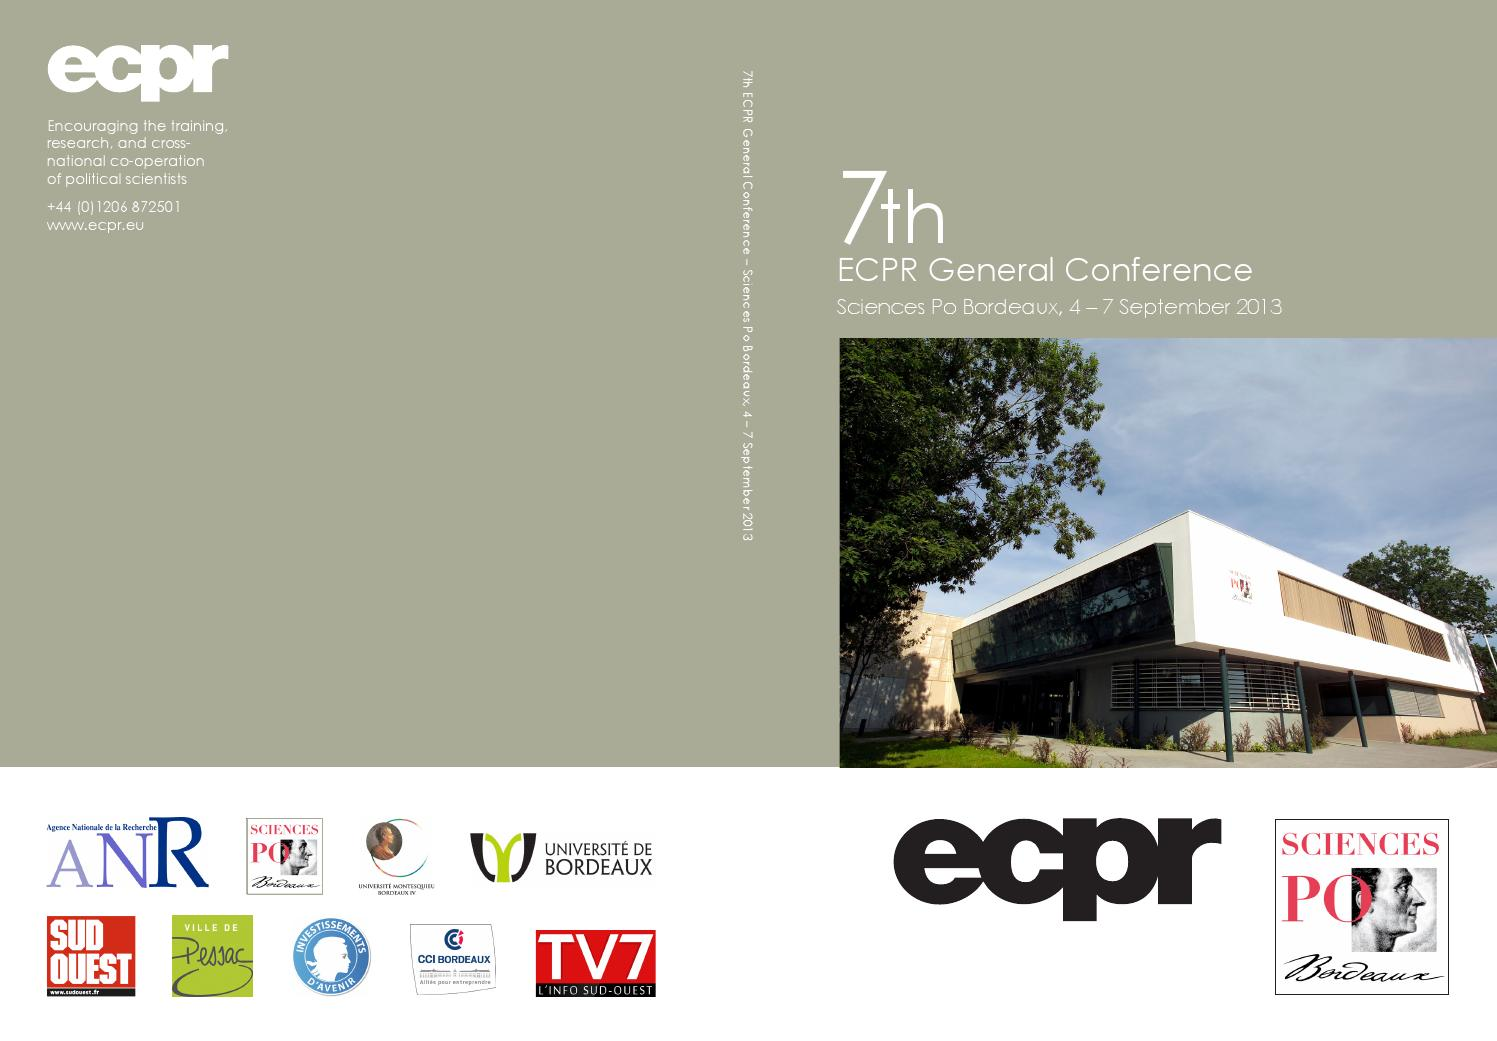 82a57552464a 2013 ecpr bordeaux general conference programme by ECPR - issuu